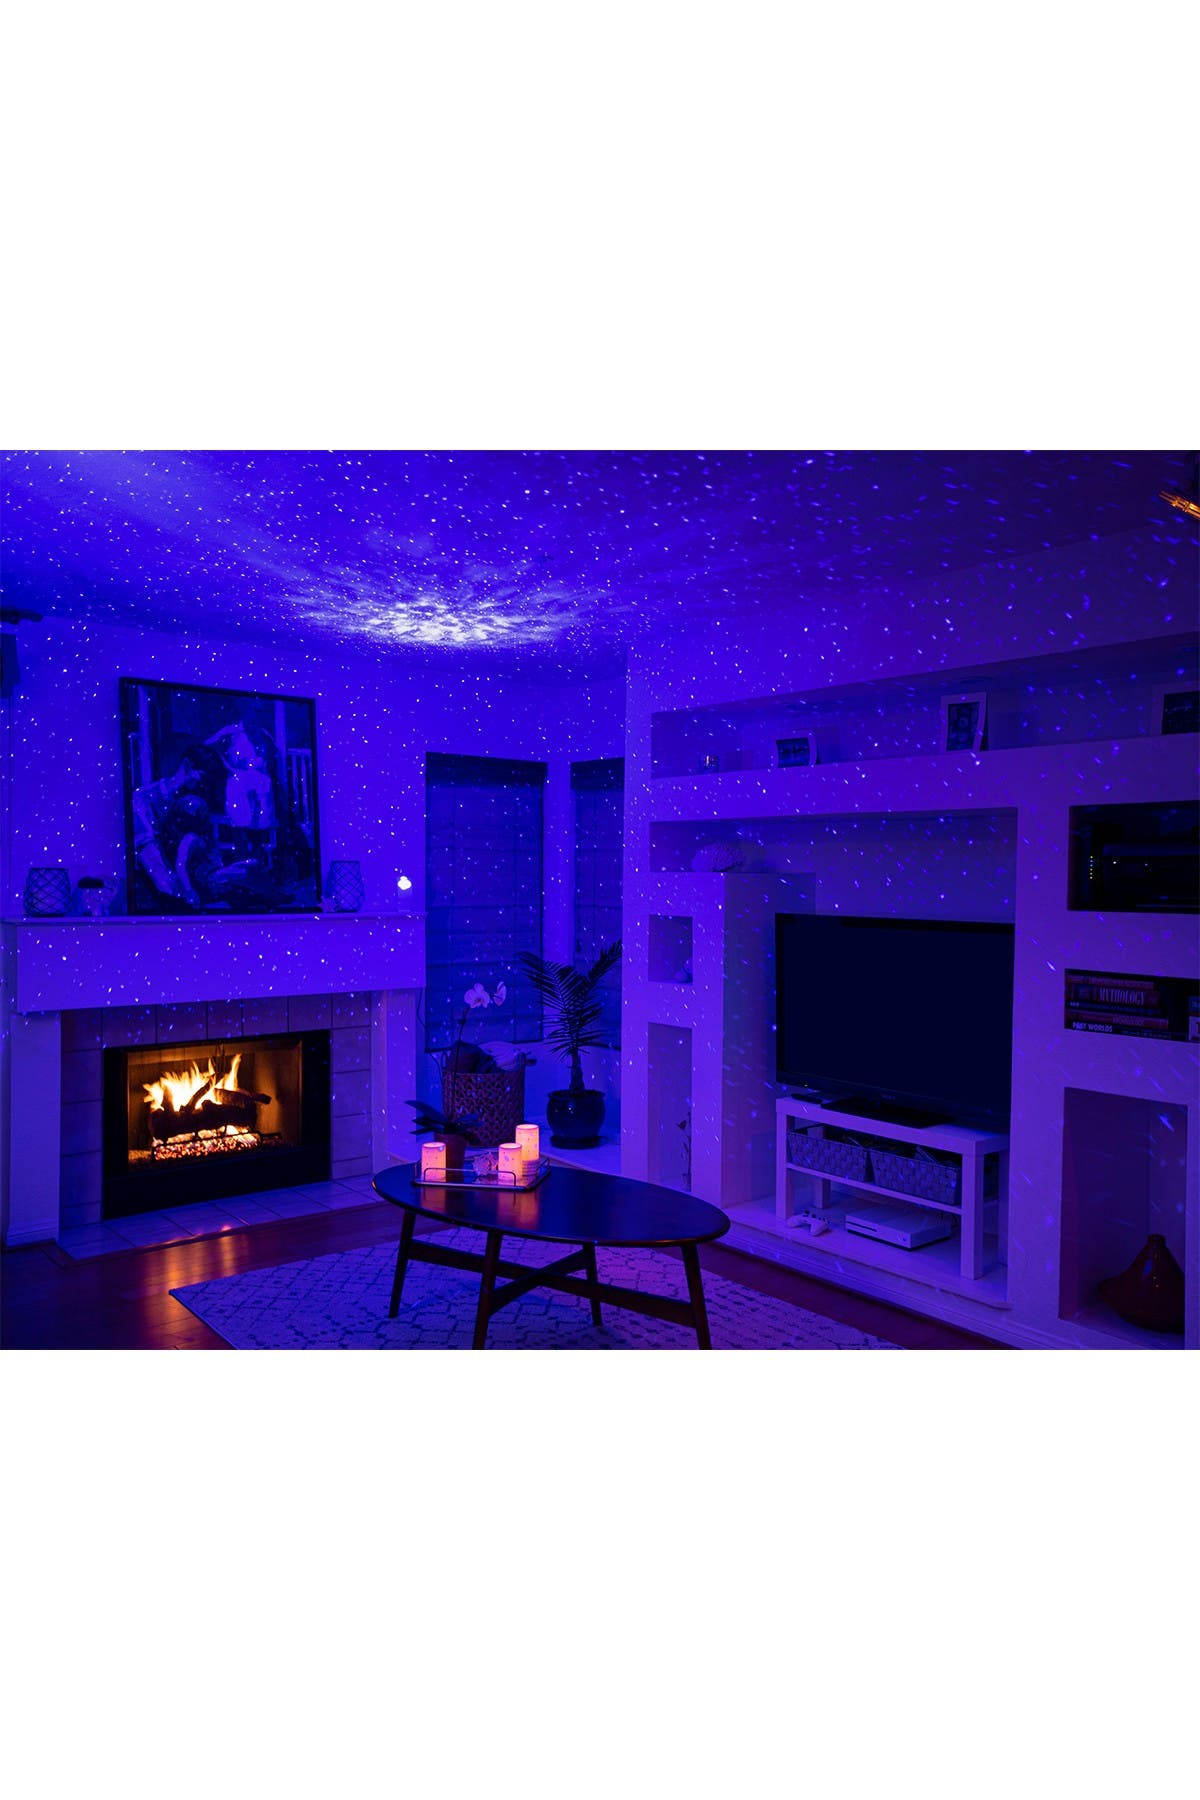 Sky Lite Laser Projector with LED Nebula Cloud Night Light Ambiance Indoor